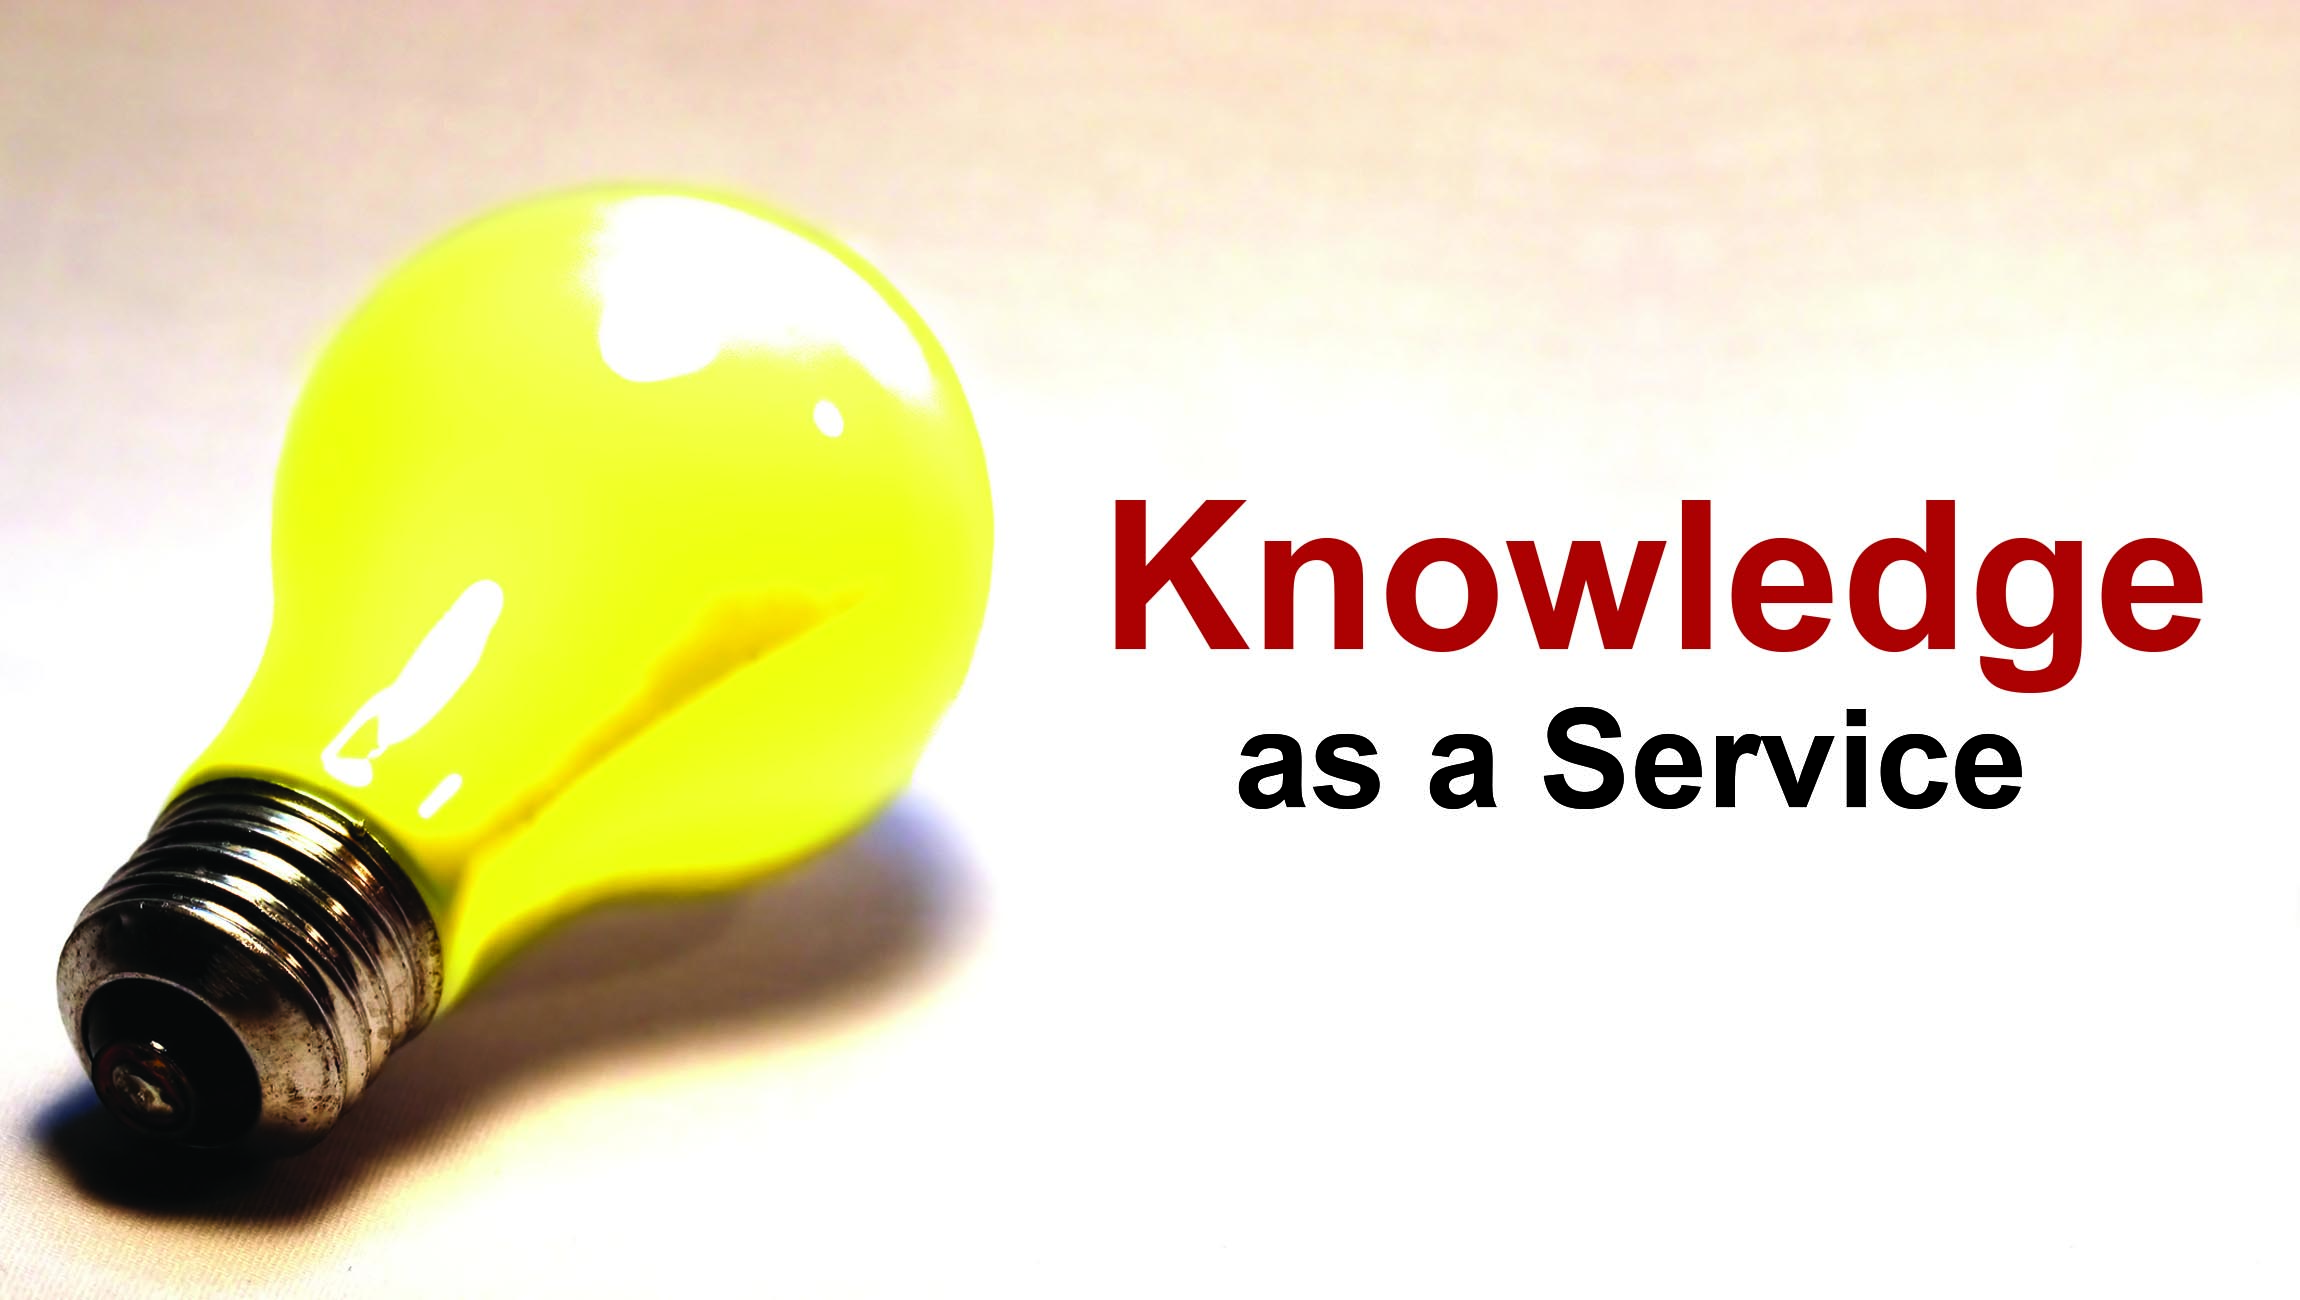 Knowledge as a